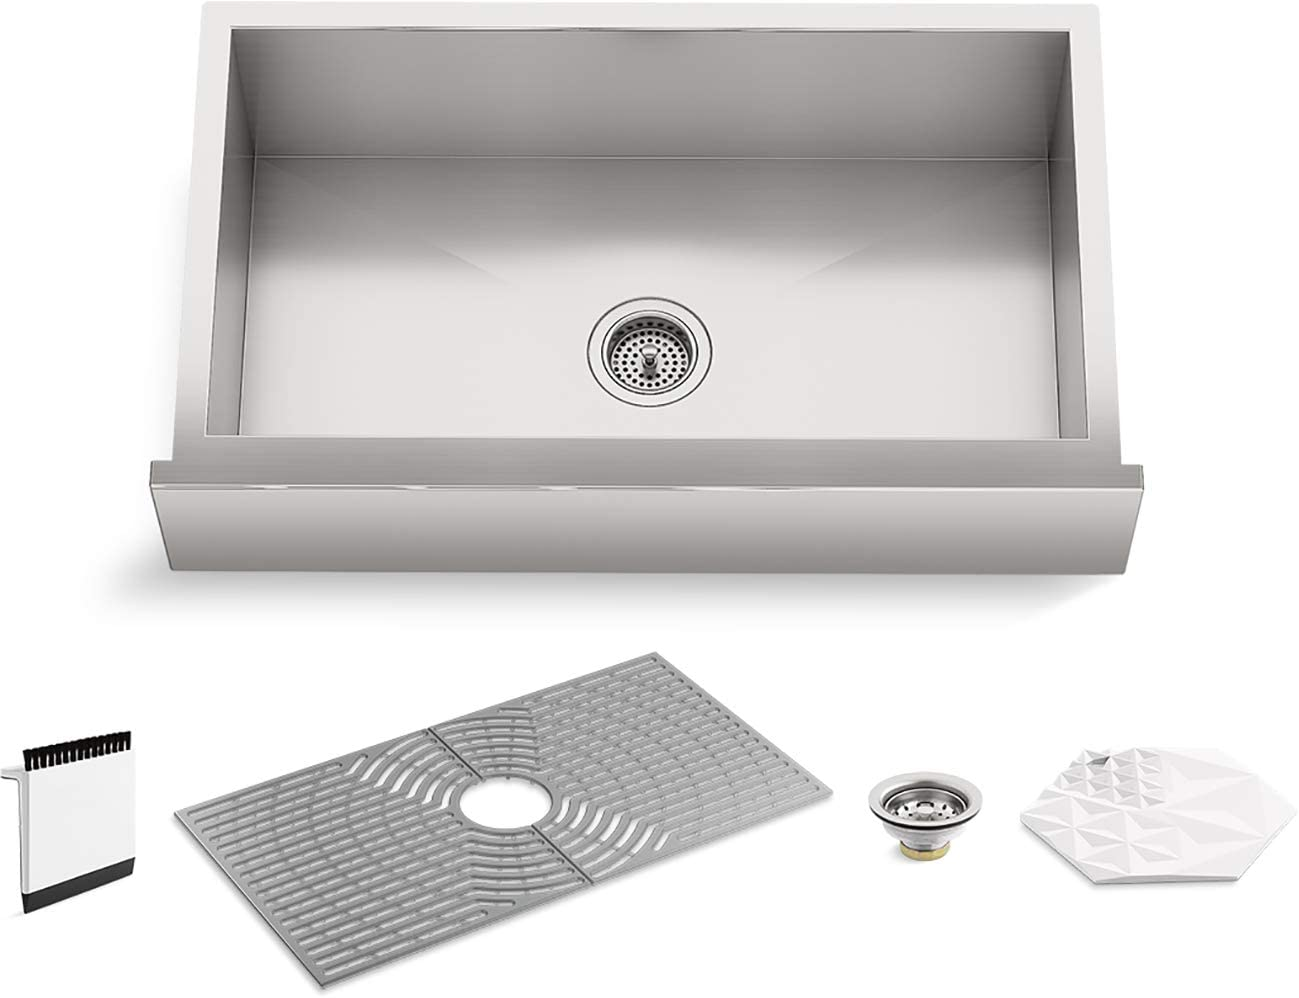 Kohler K-20243-PC-NA STERLING Ludington 34 Under-Mount Single-Bowl Farmhouse Kitchen Sink with Accessories, Apron-Front Basin, Stainless Steel